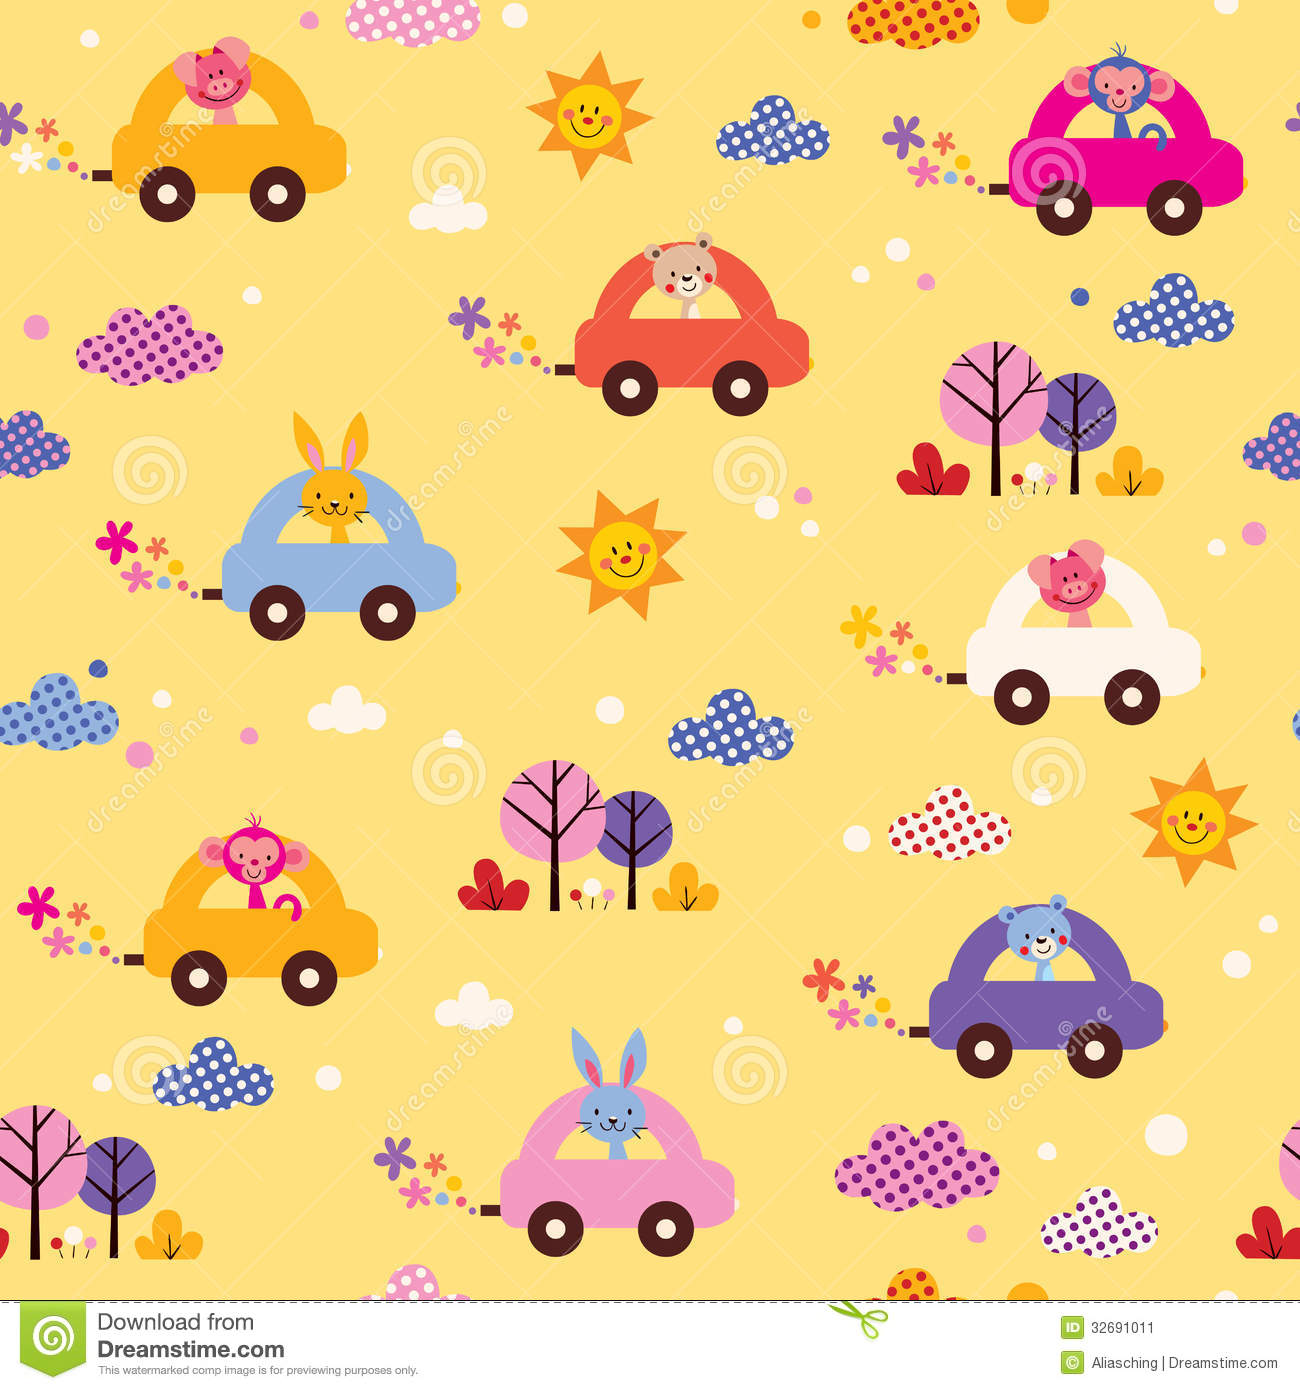 Cute Bees Wallpaper Cute Animals Driving Cars Kids Pattern Stock Image Image